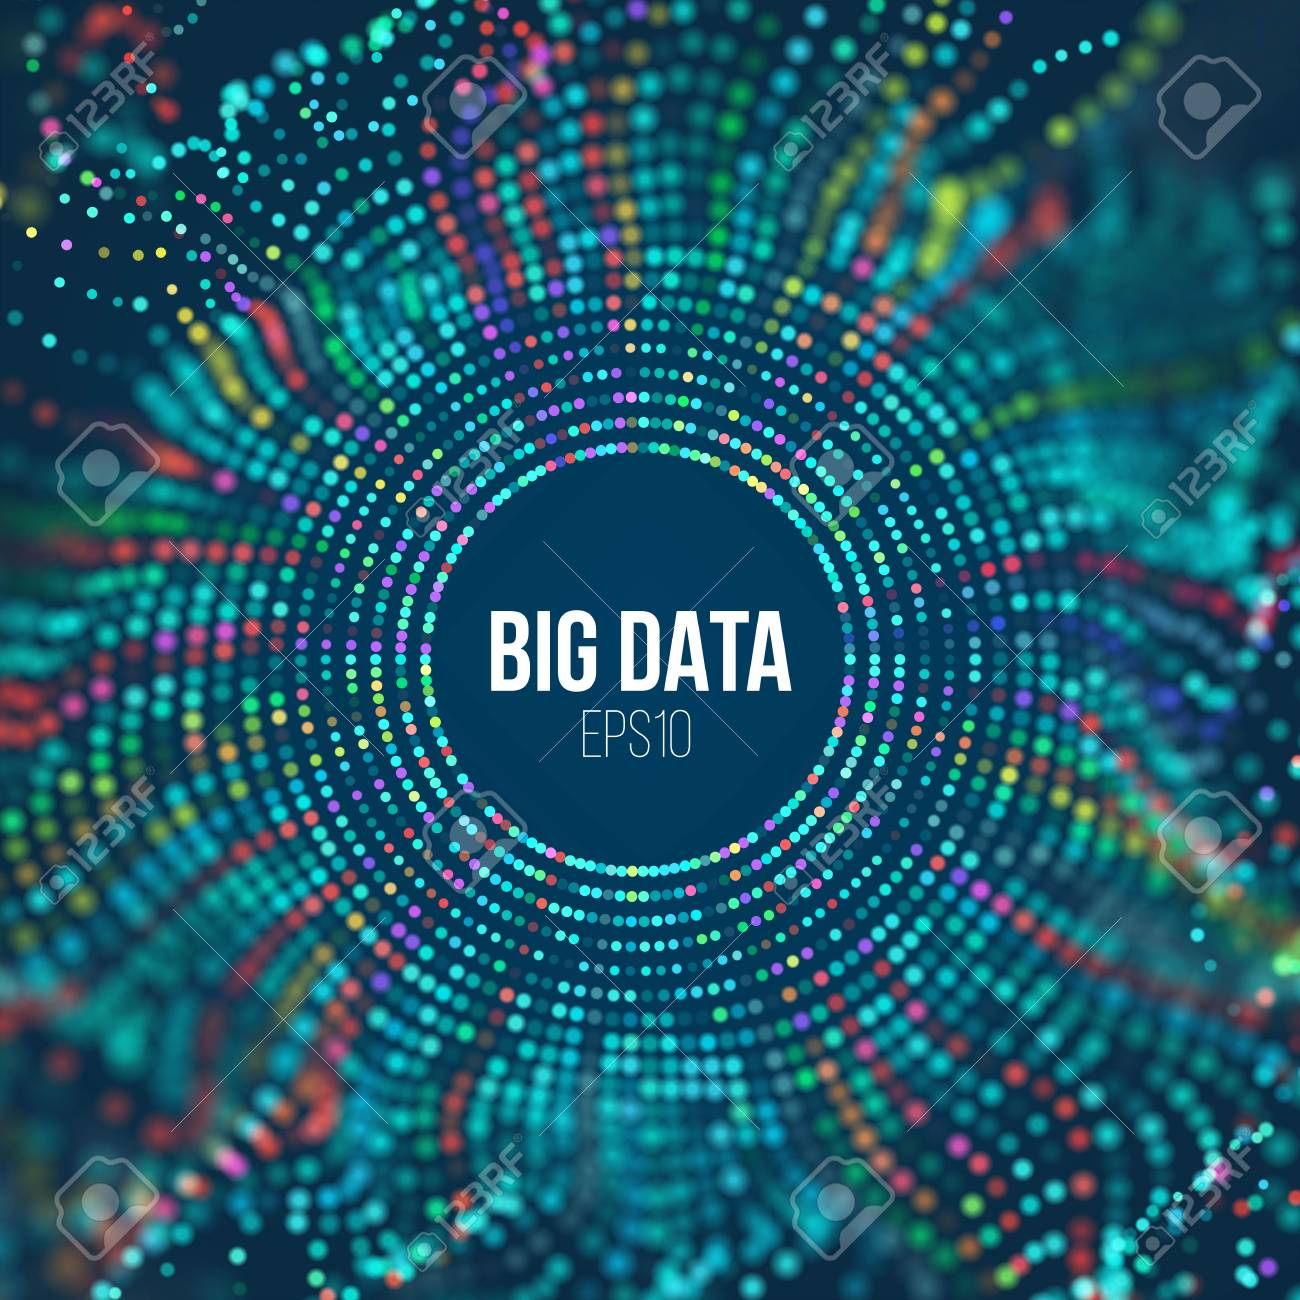 1437 Bigdata Stock Illustrations Cliparts And Royalty Free Abstract Wireframe Globe On Circuit Board Binary Code Background Science Big Data Innovation Technology Illustration